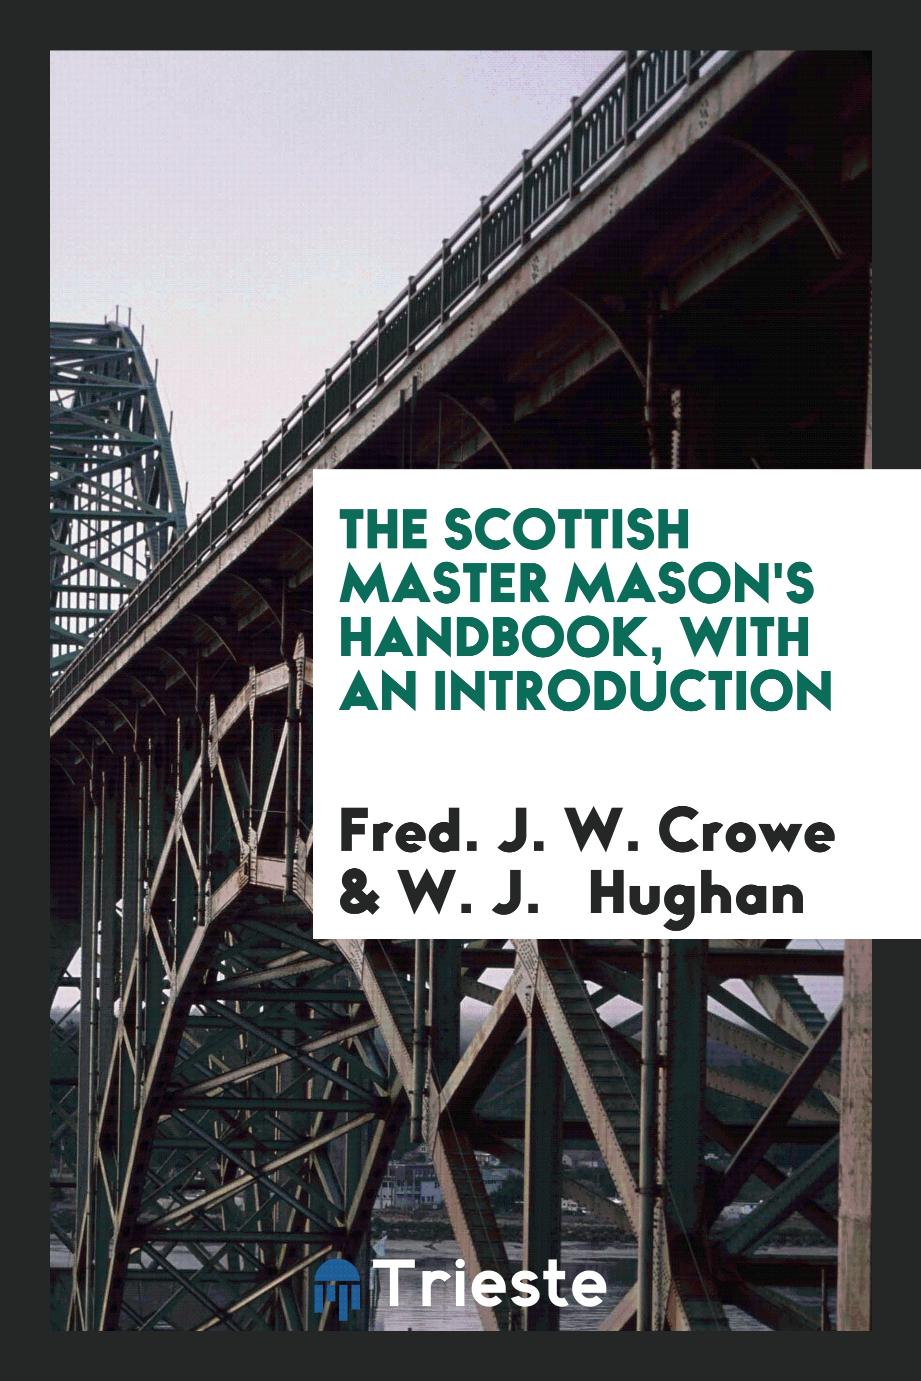 The Scottish Master Mason's Handbook, with an Introduction